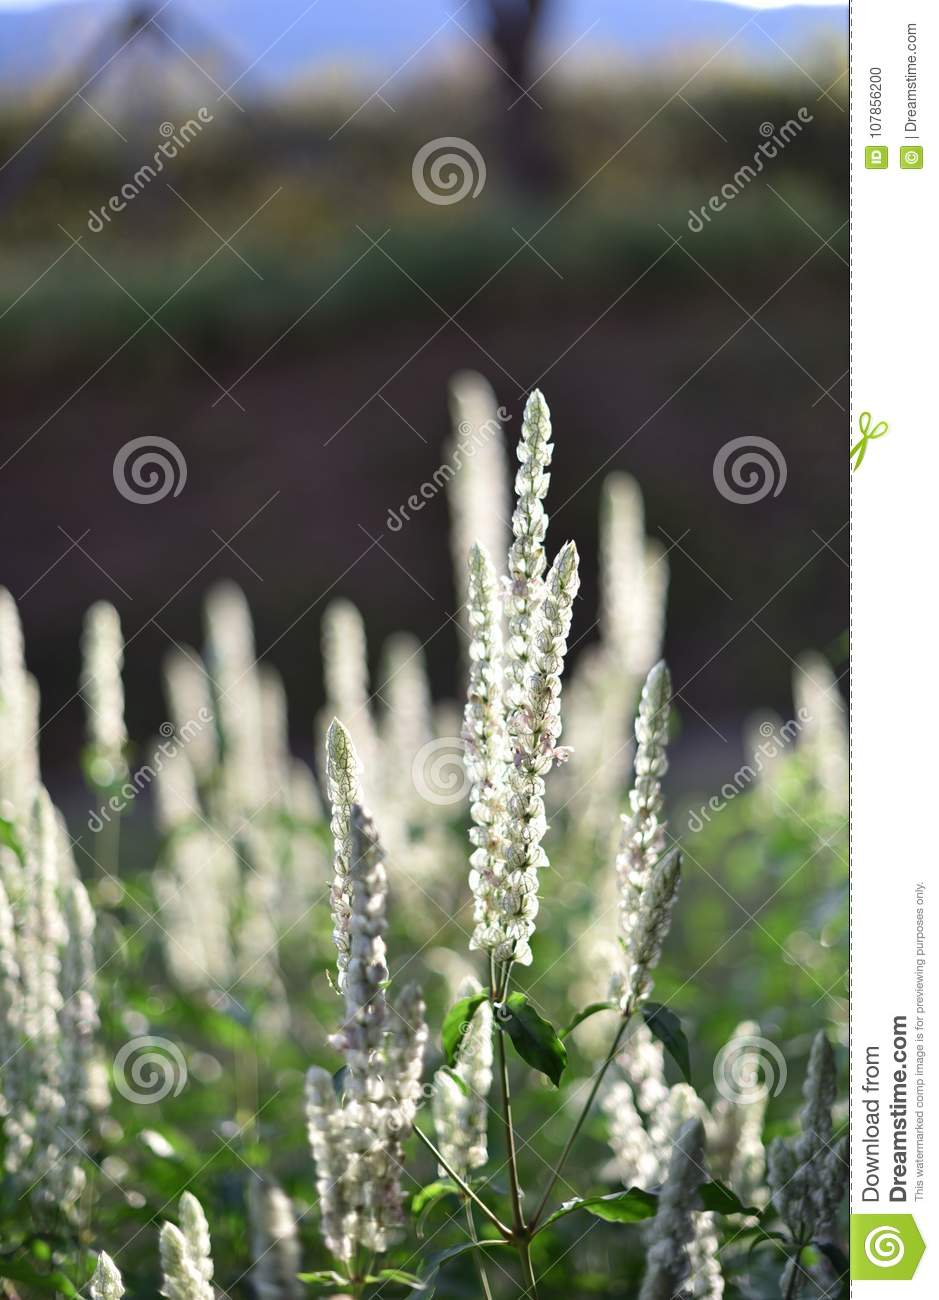 A Beautiful White Flower With Green Plants Background Stock Photo